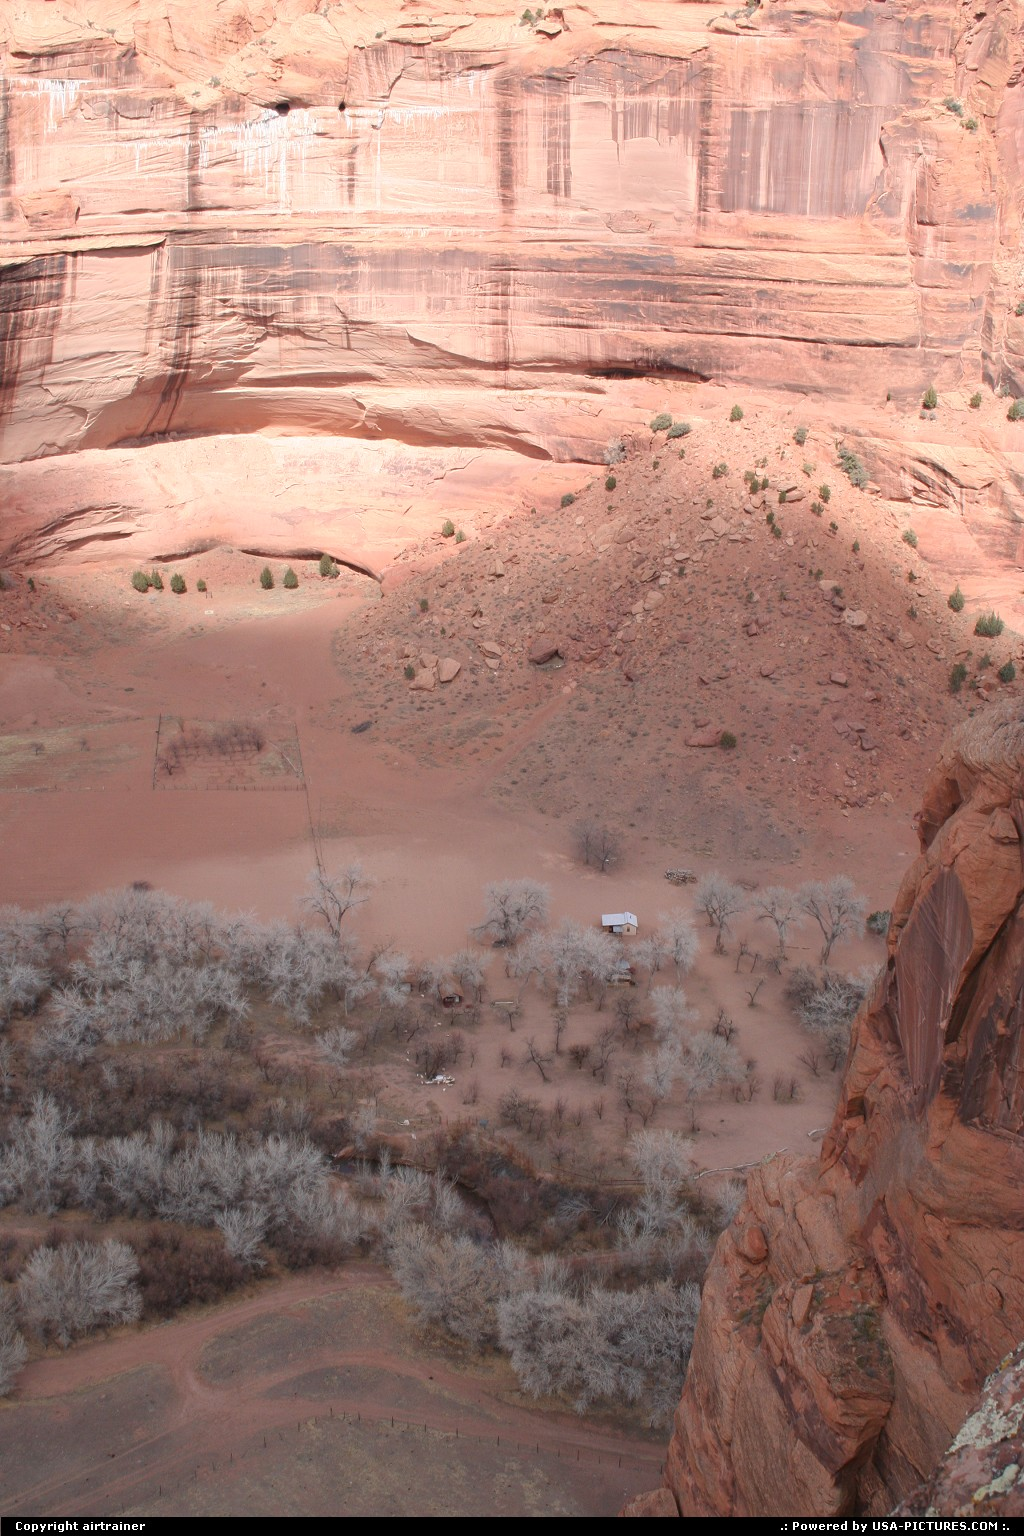 Picture by airtrainer: Hors de la ville Arizona   canyon de chelly, south rim